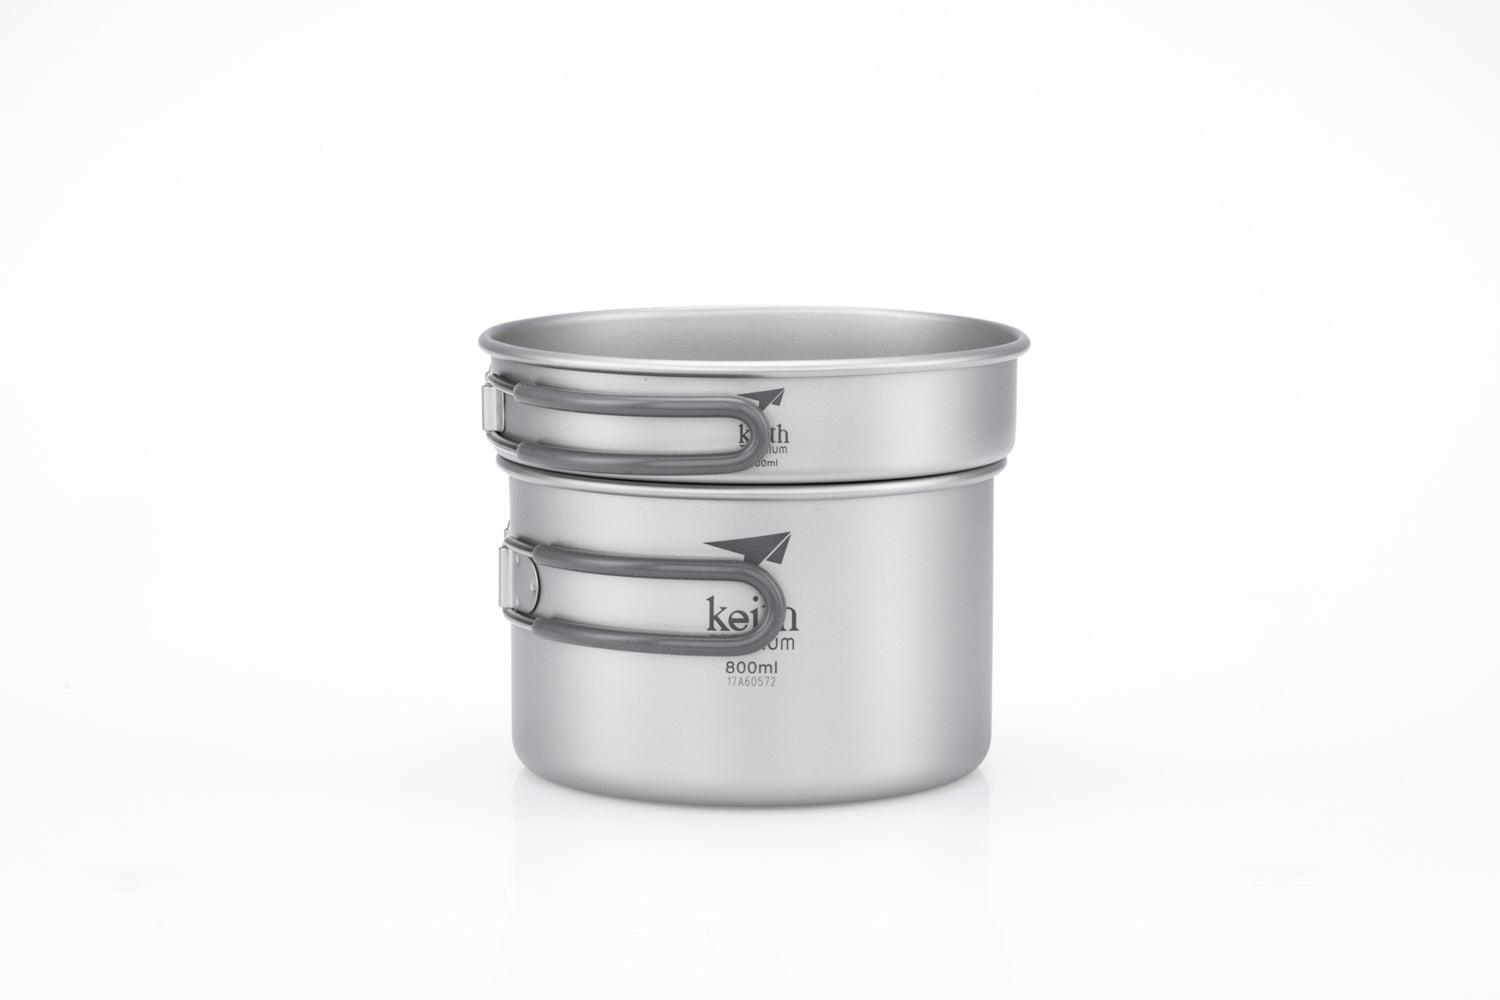 Keith 2-Piece Titanium pot and Pan Cook Set Ti6012